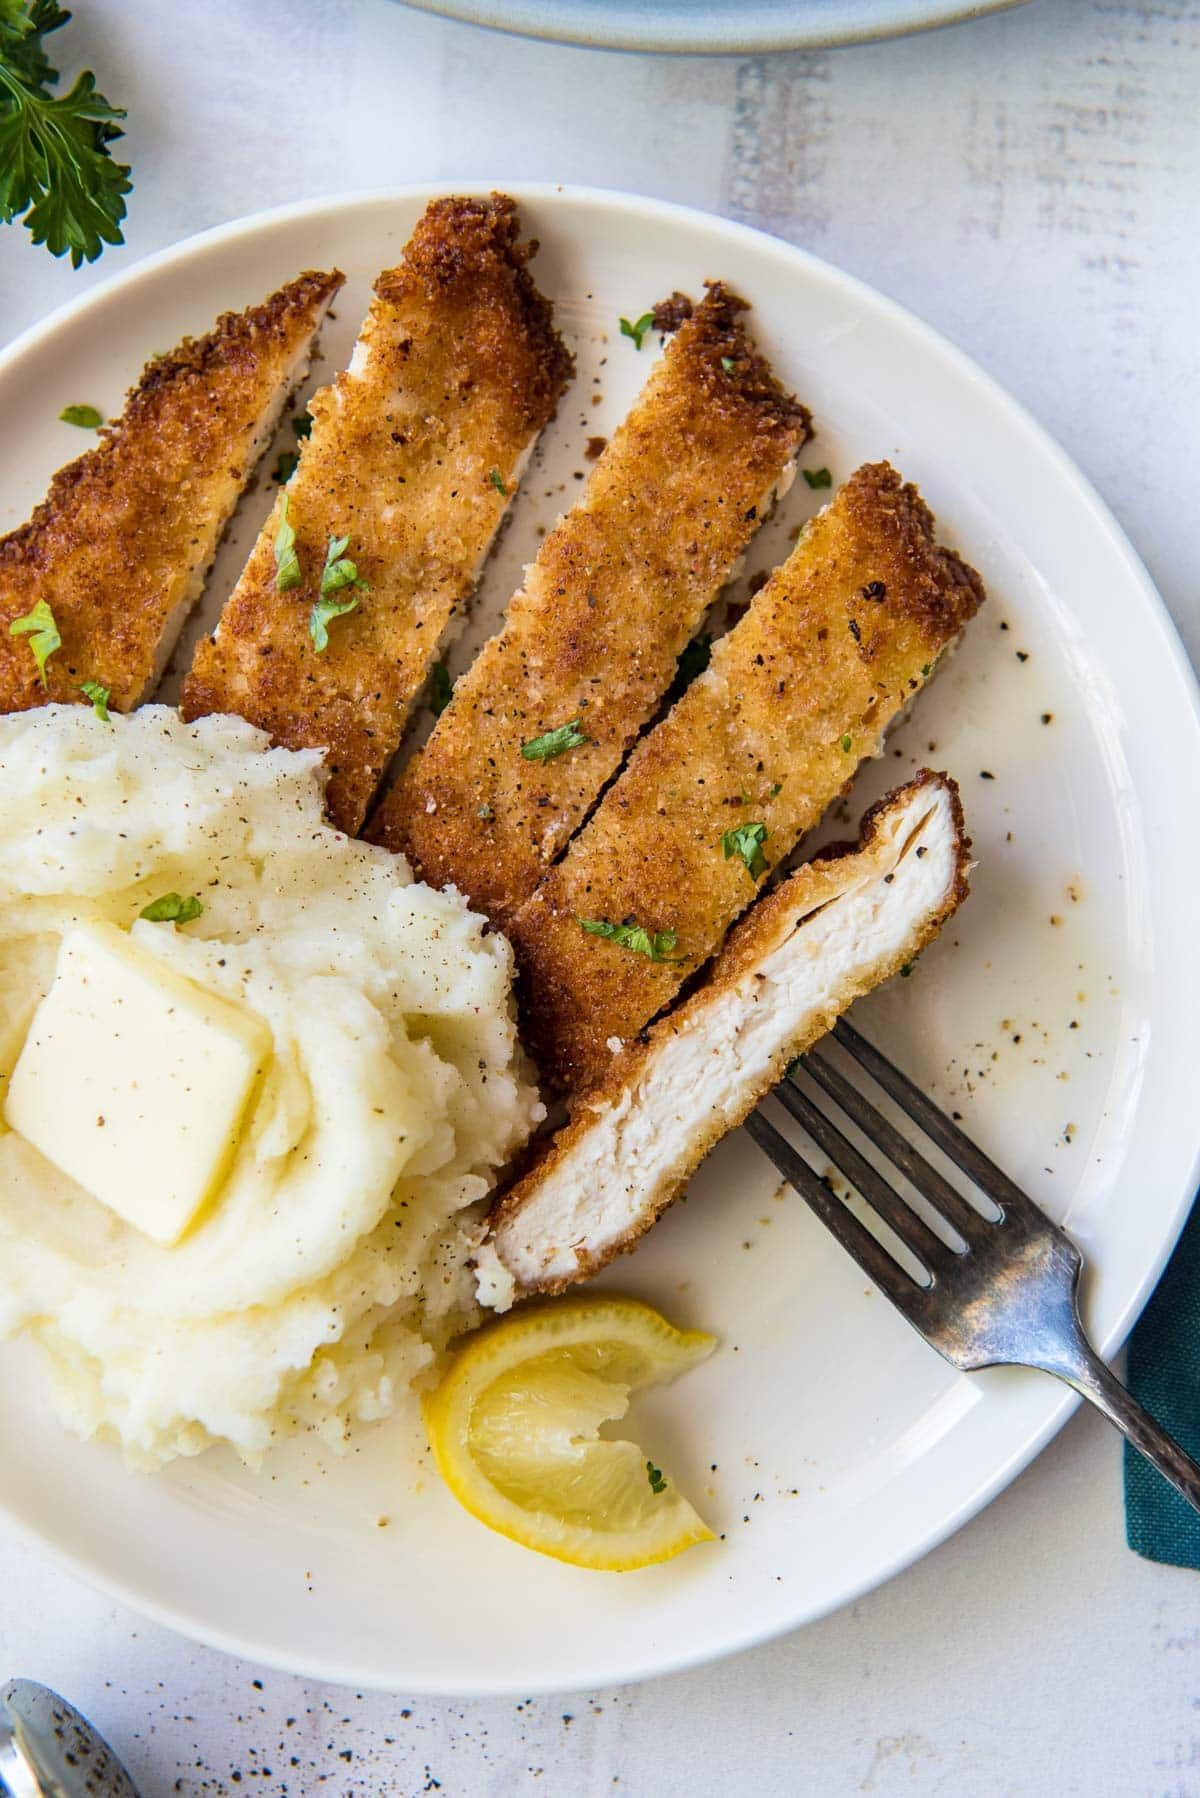 mashed potatoes and sliced breaded chicken on a white plate with a fork